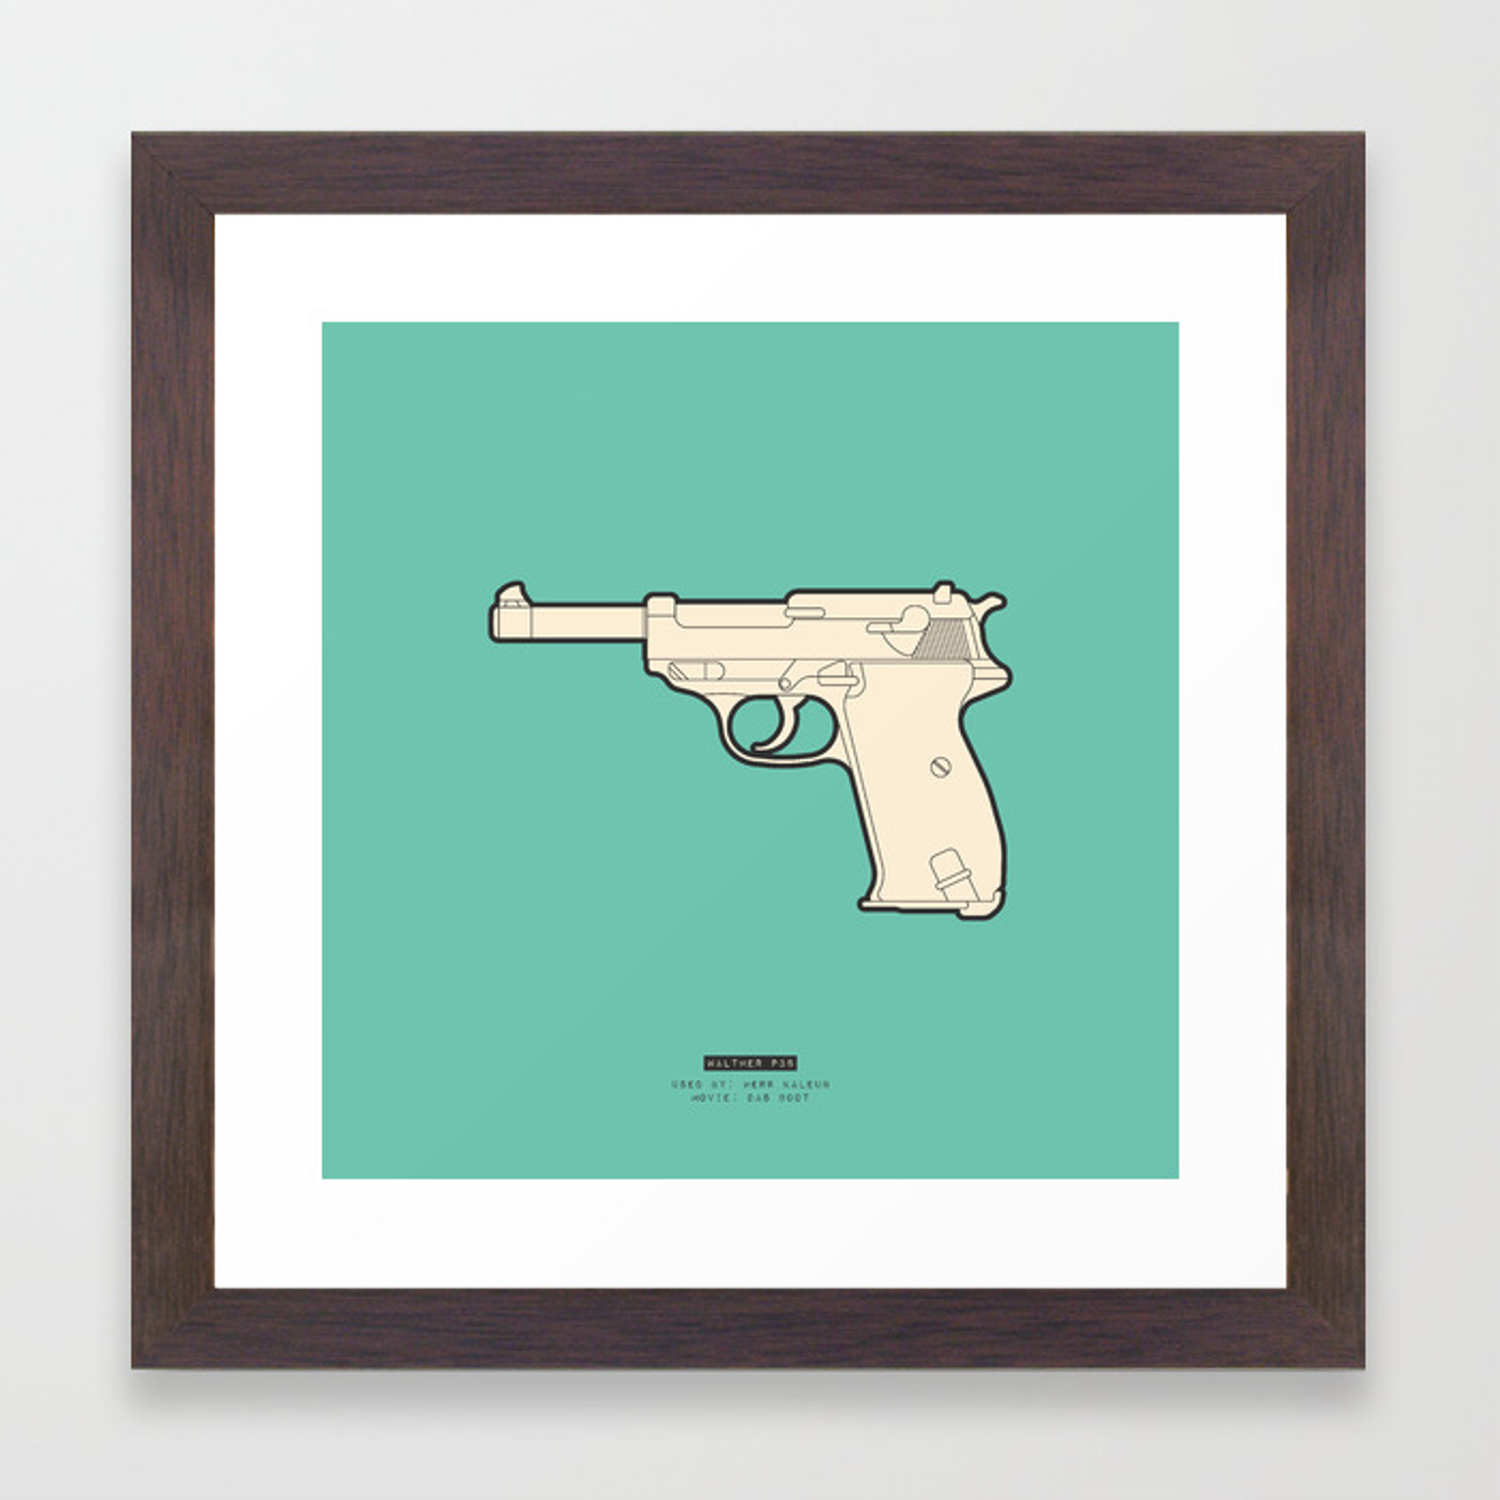 FAMOUS MOVIE WEAPONS - Herr Kaleun Framed Art Print